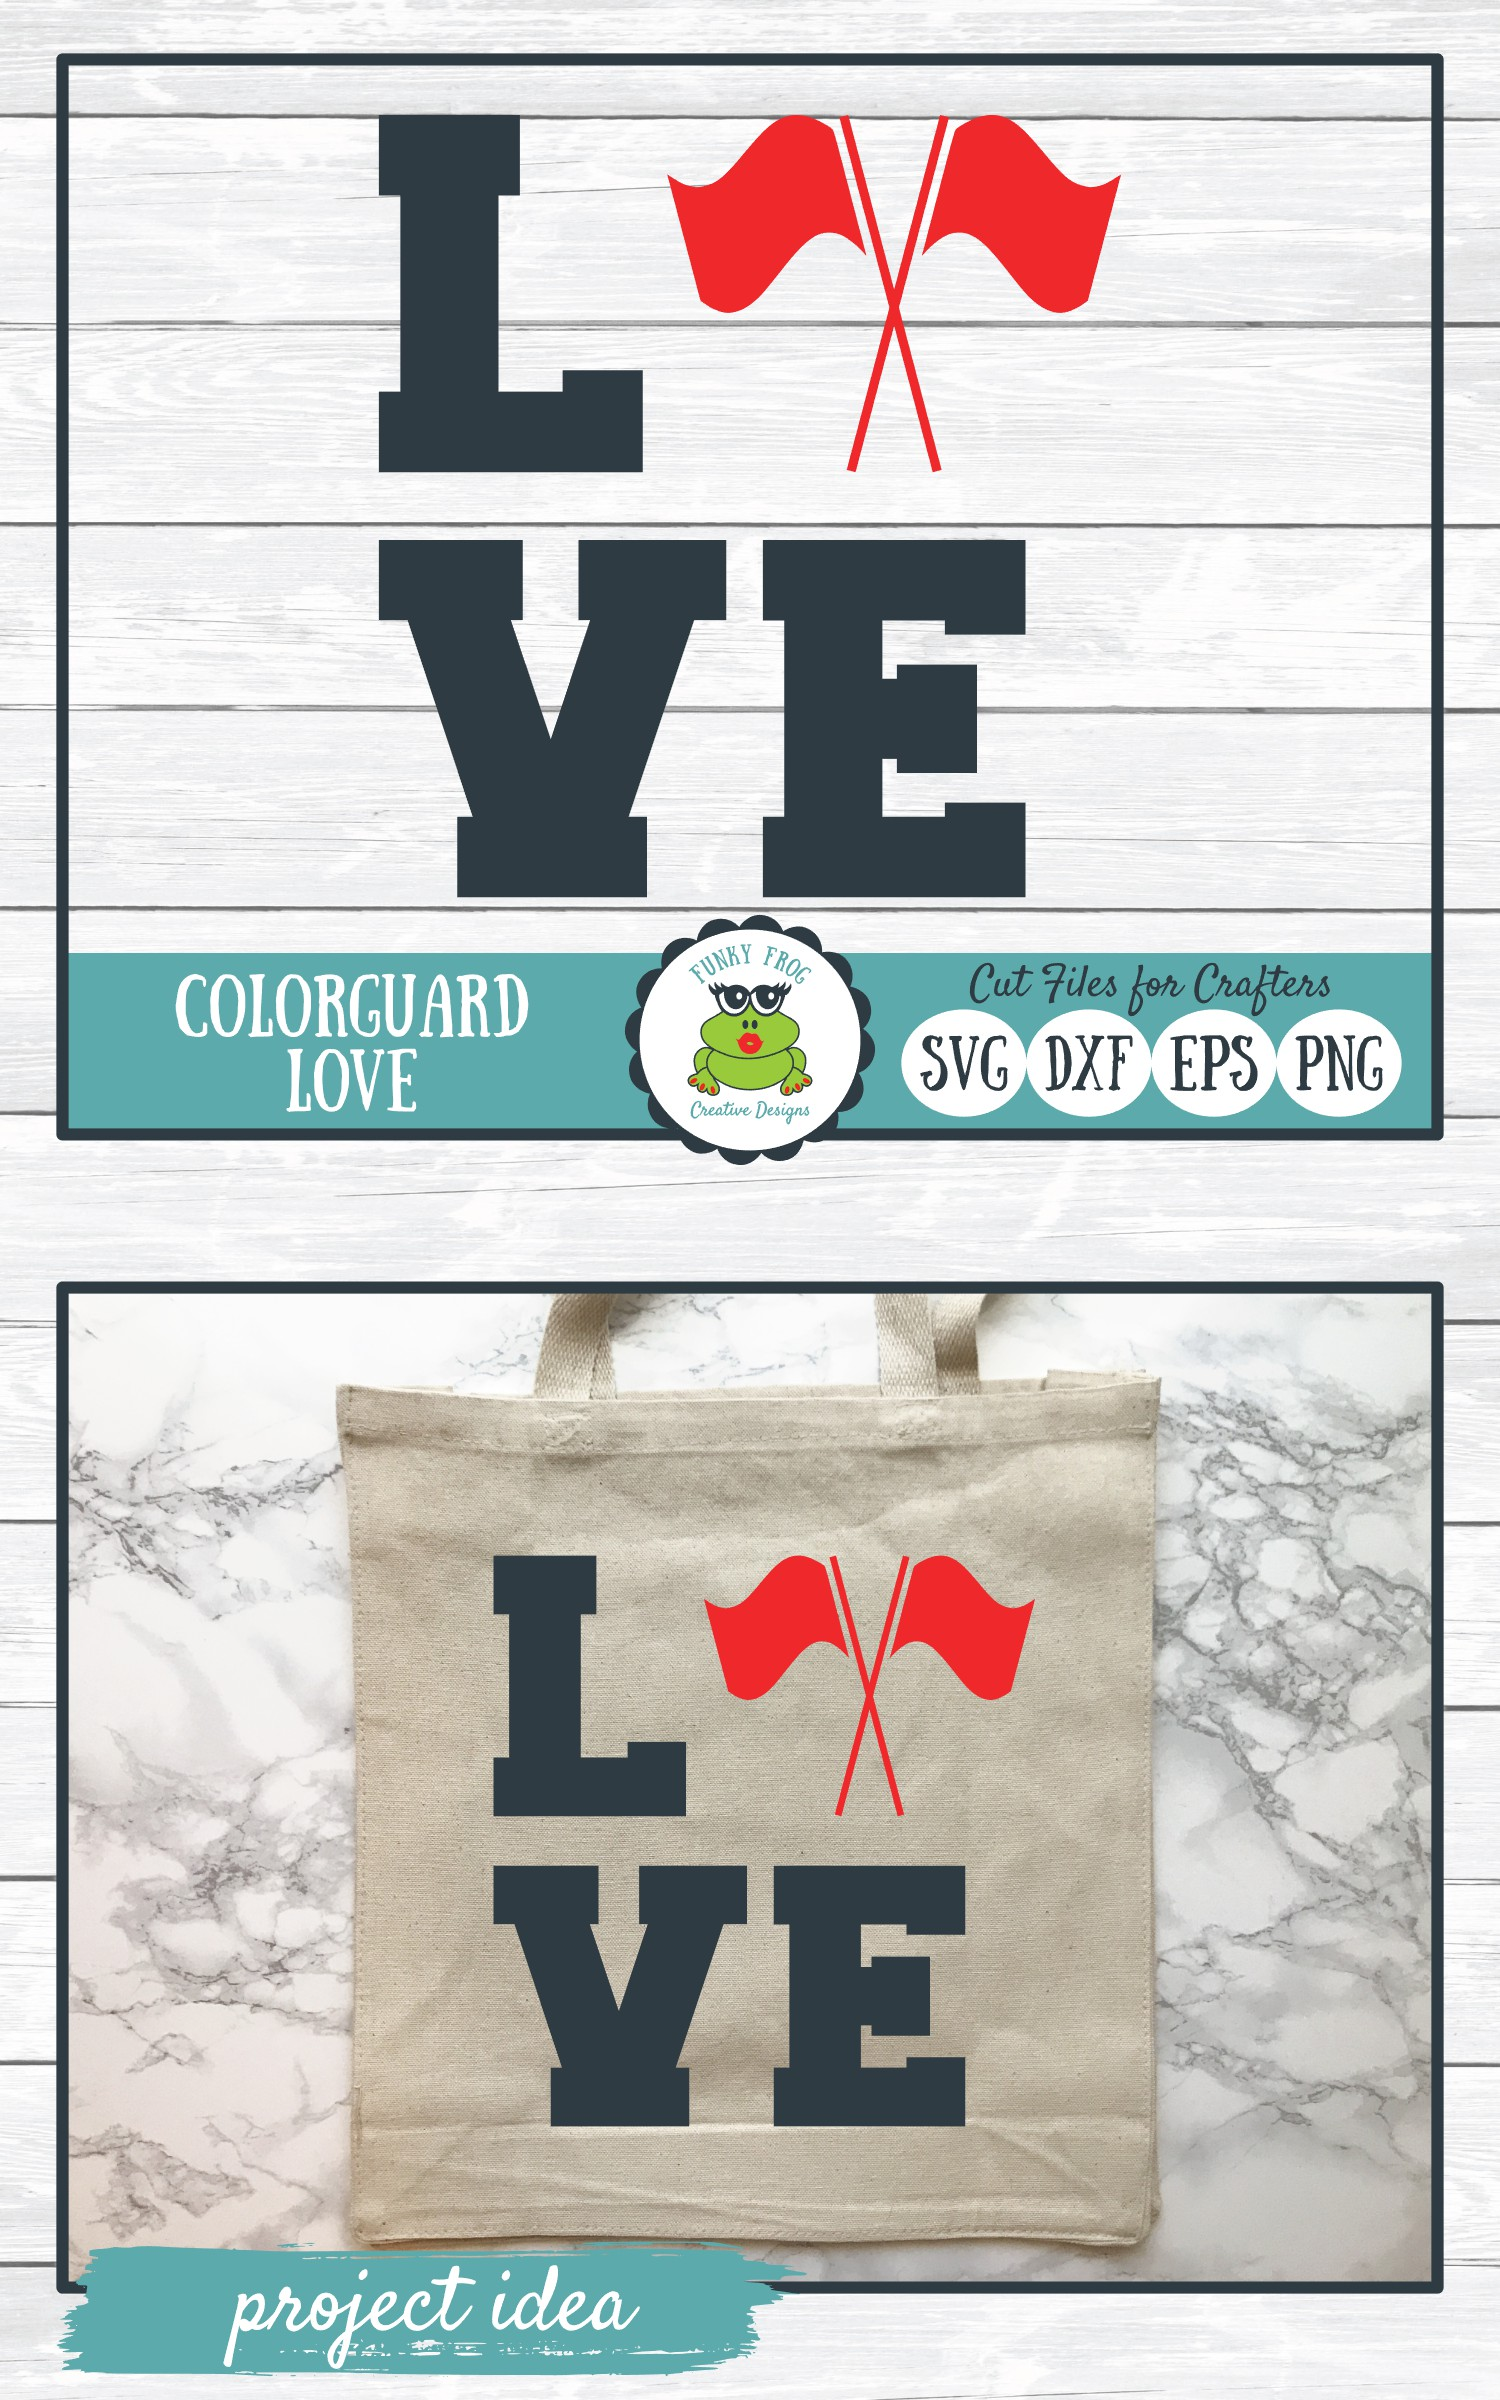 Color Guard Love, SVG Cut File for Crafters example image 4